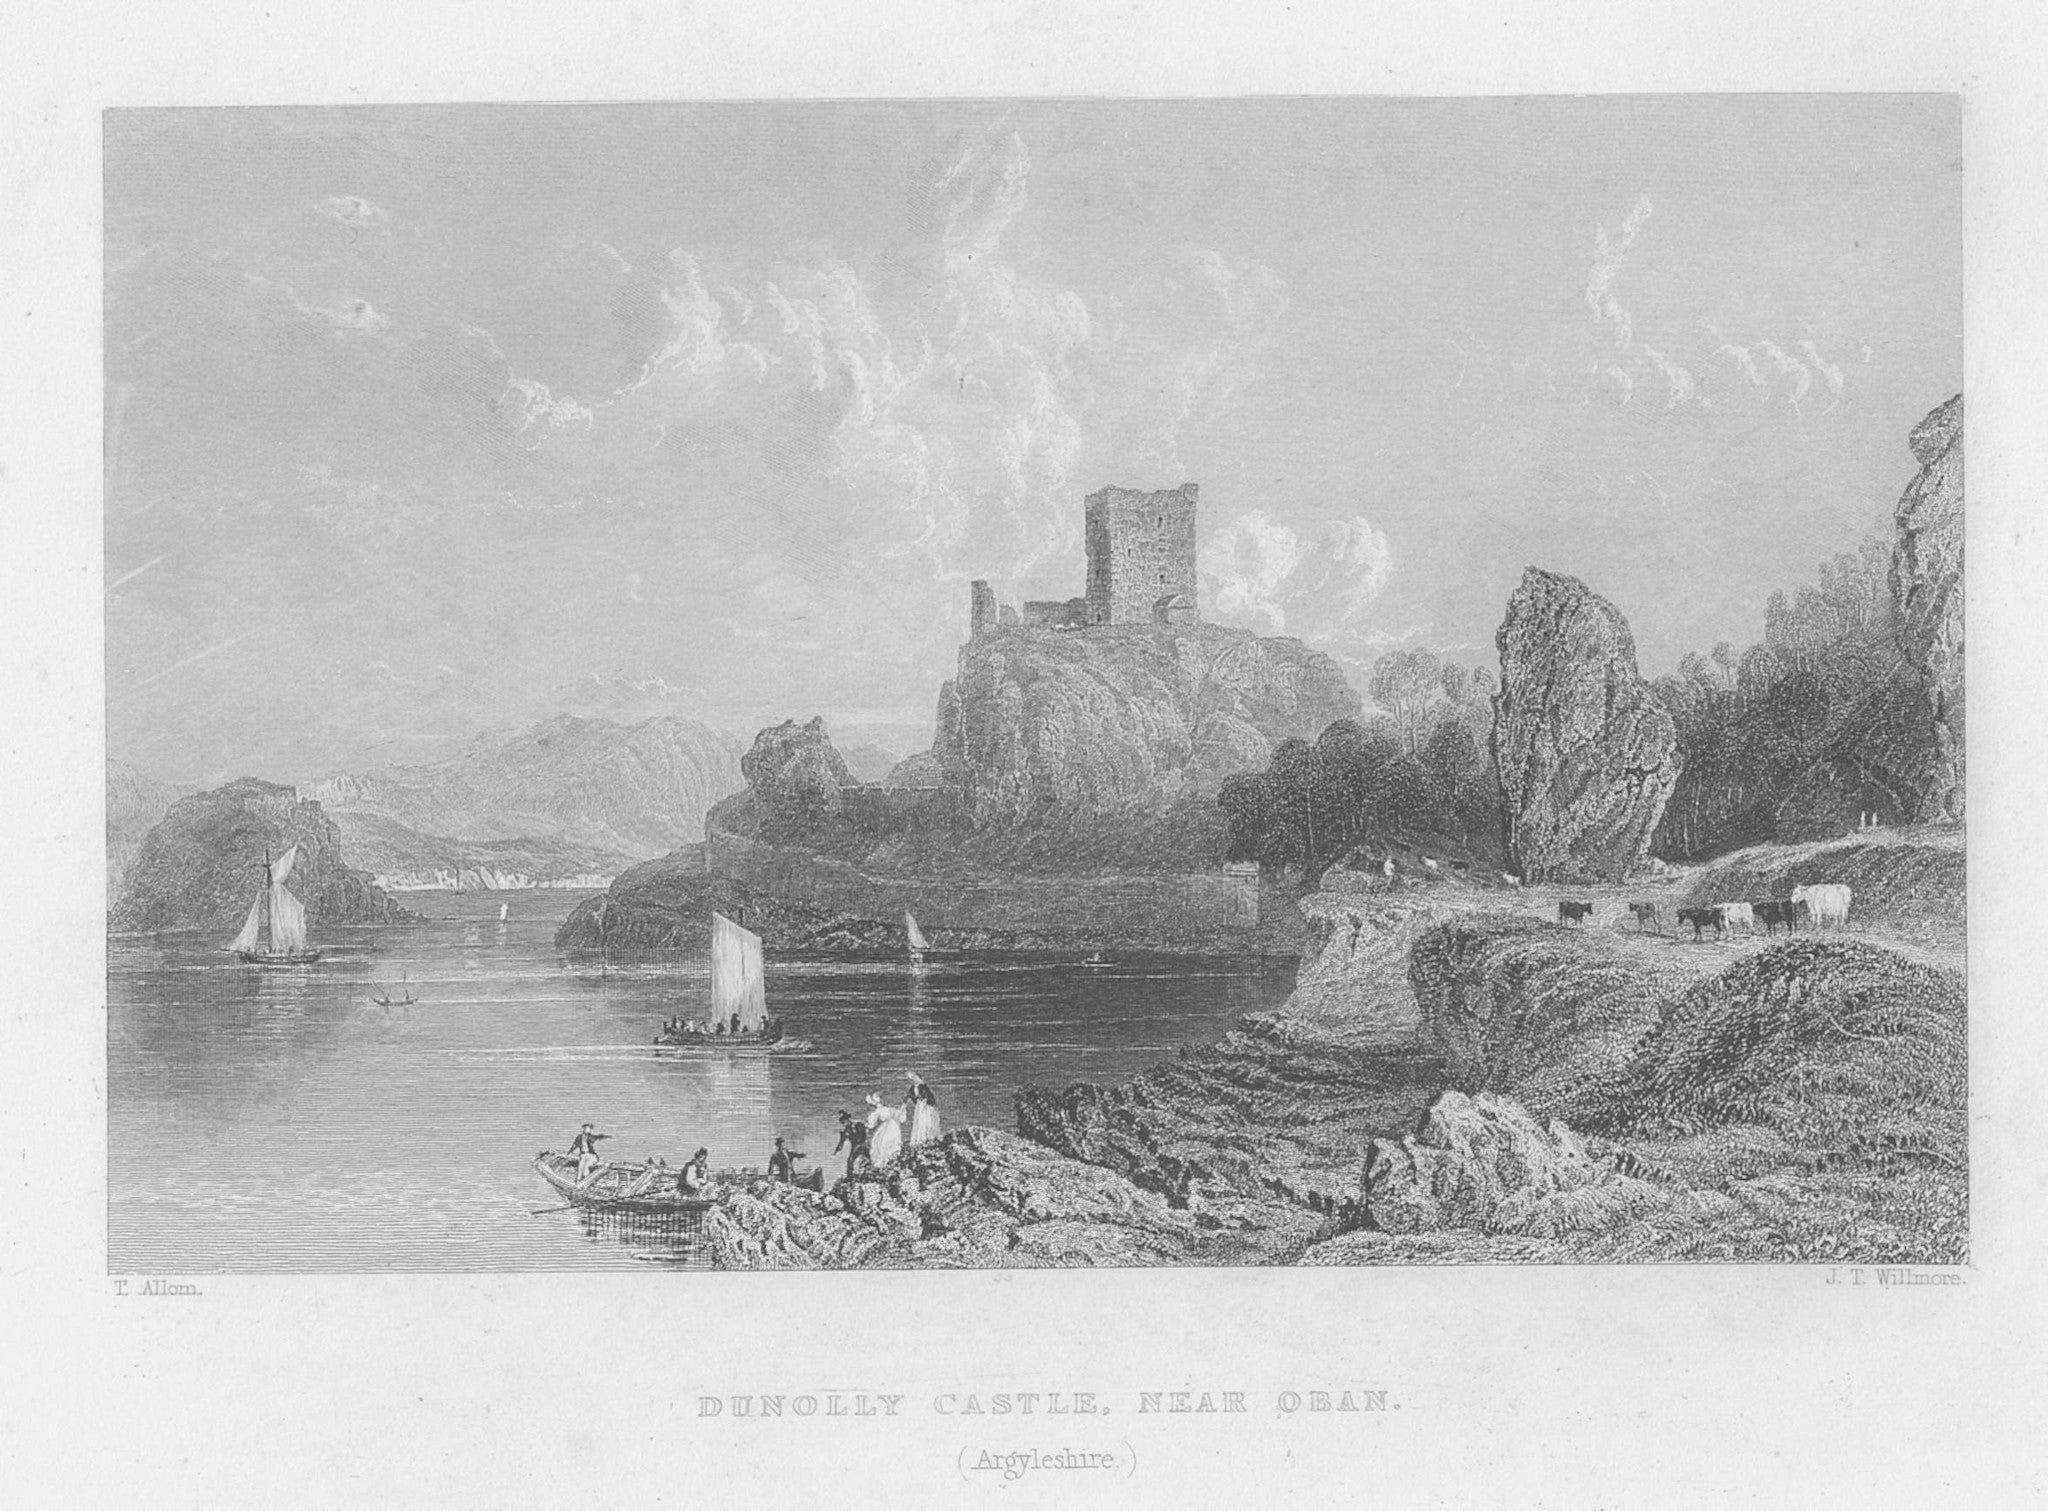 Dunolly Castle, near Oban (Argyllshire)